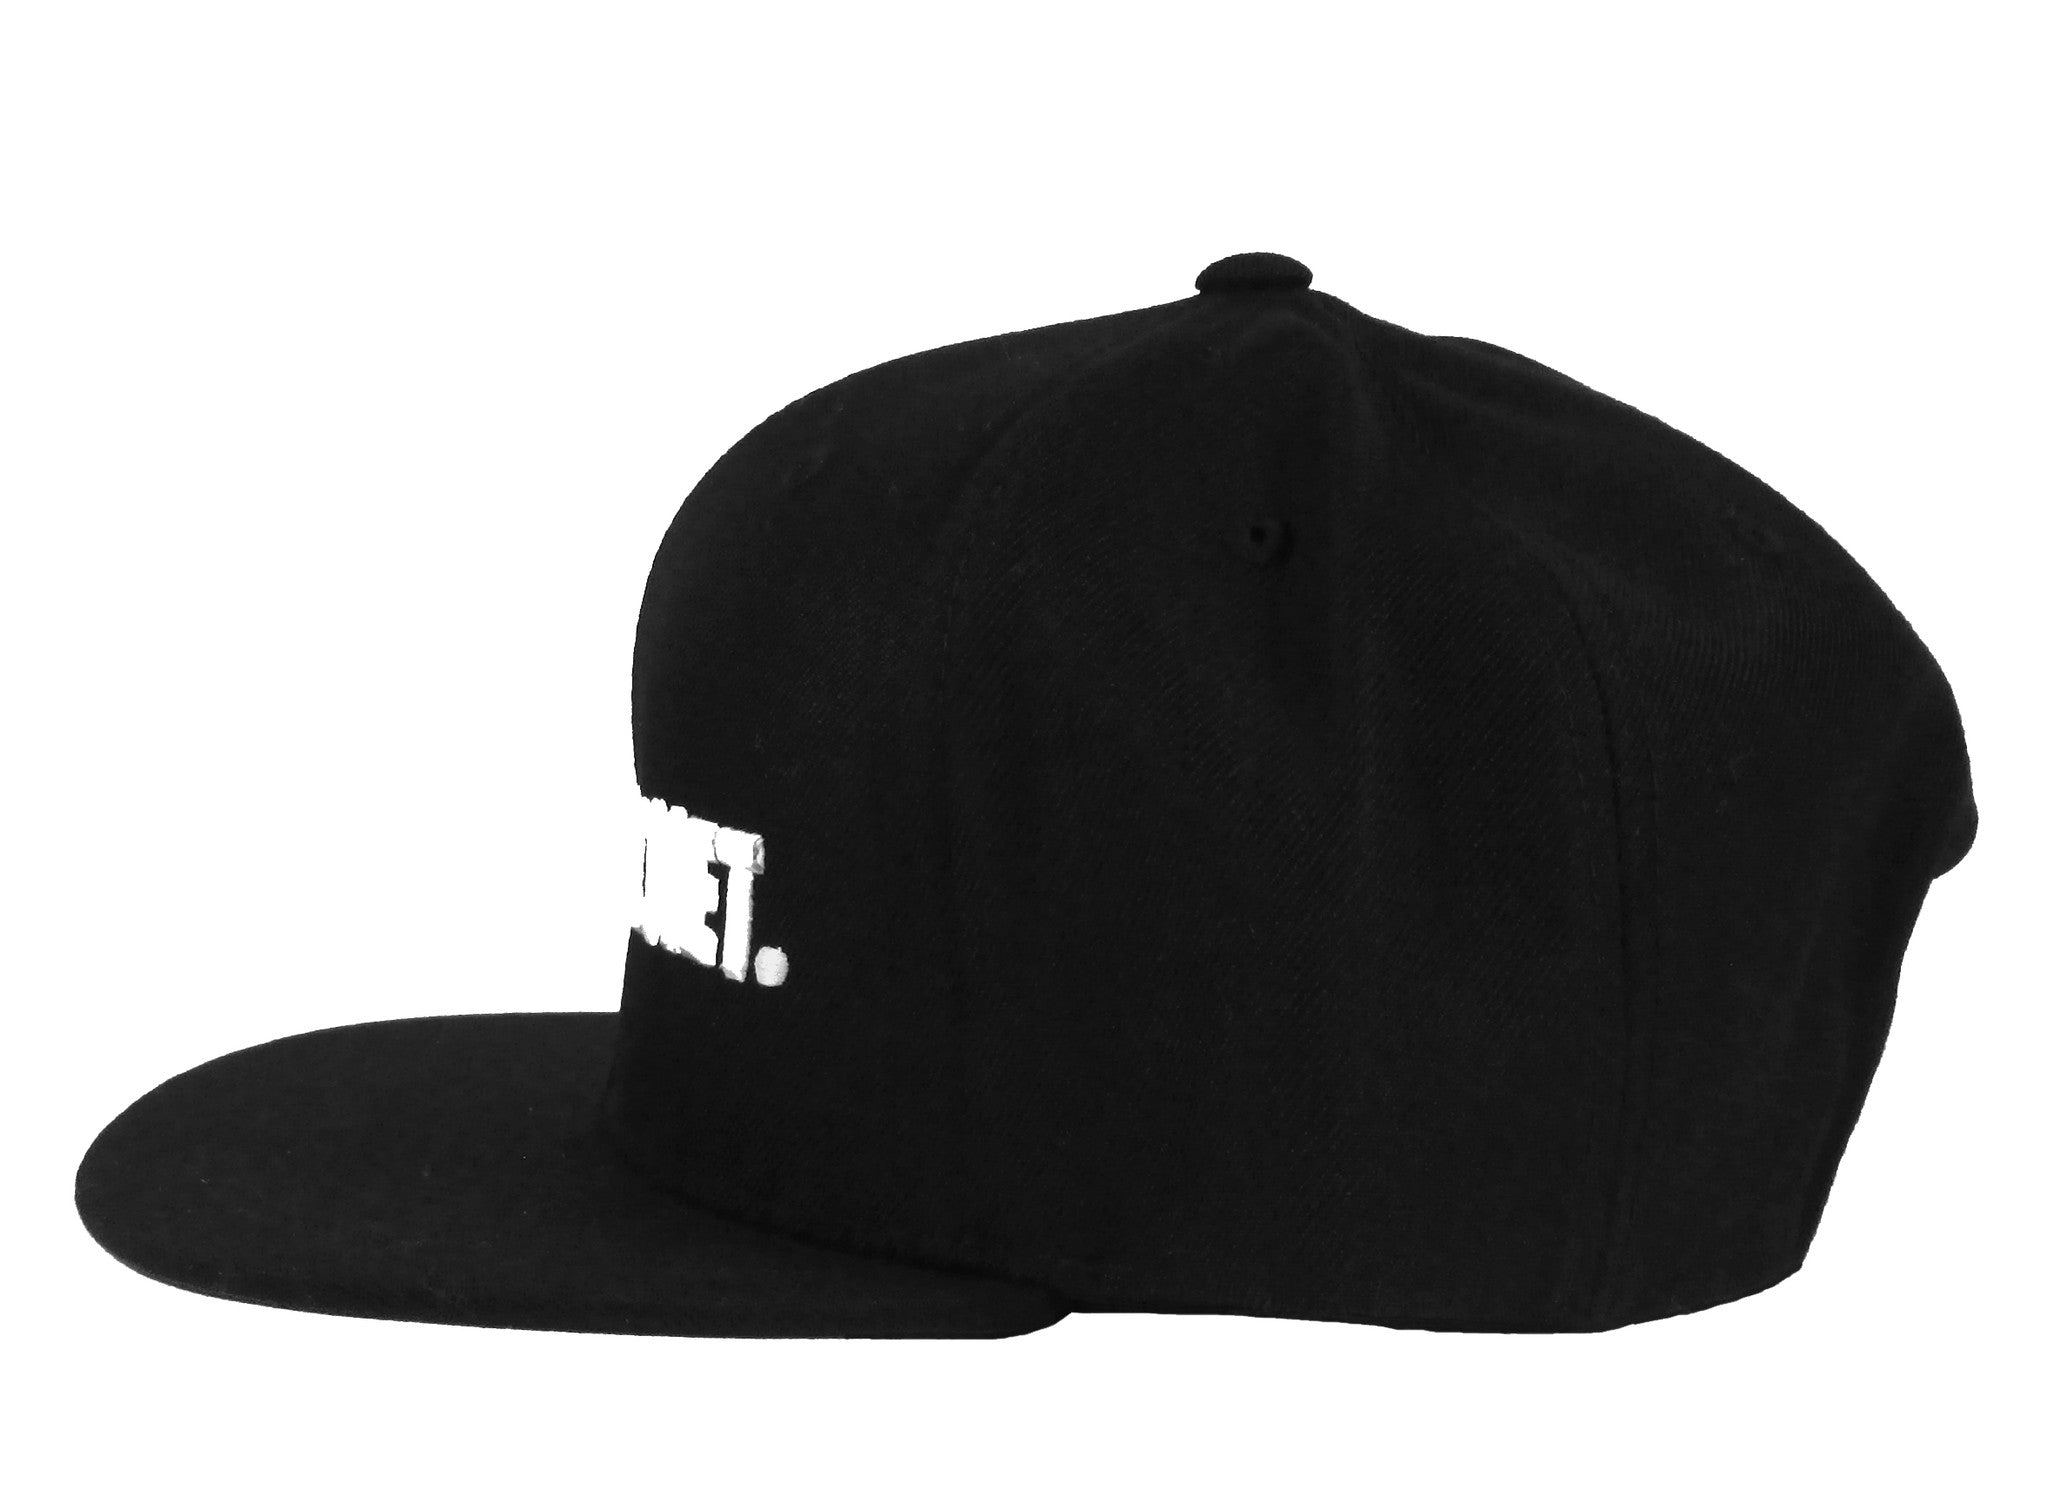 Alex & Chloe Black Snap Back Side View